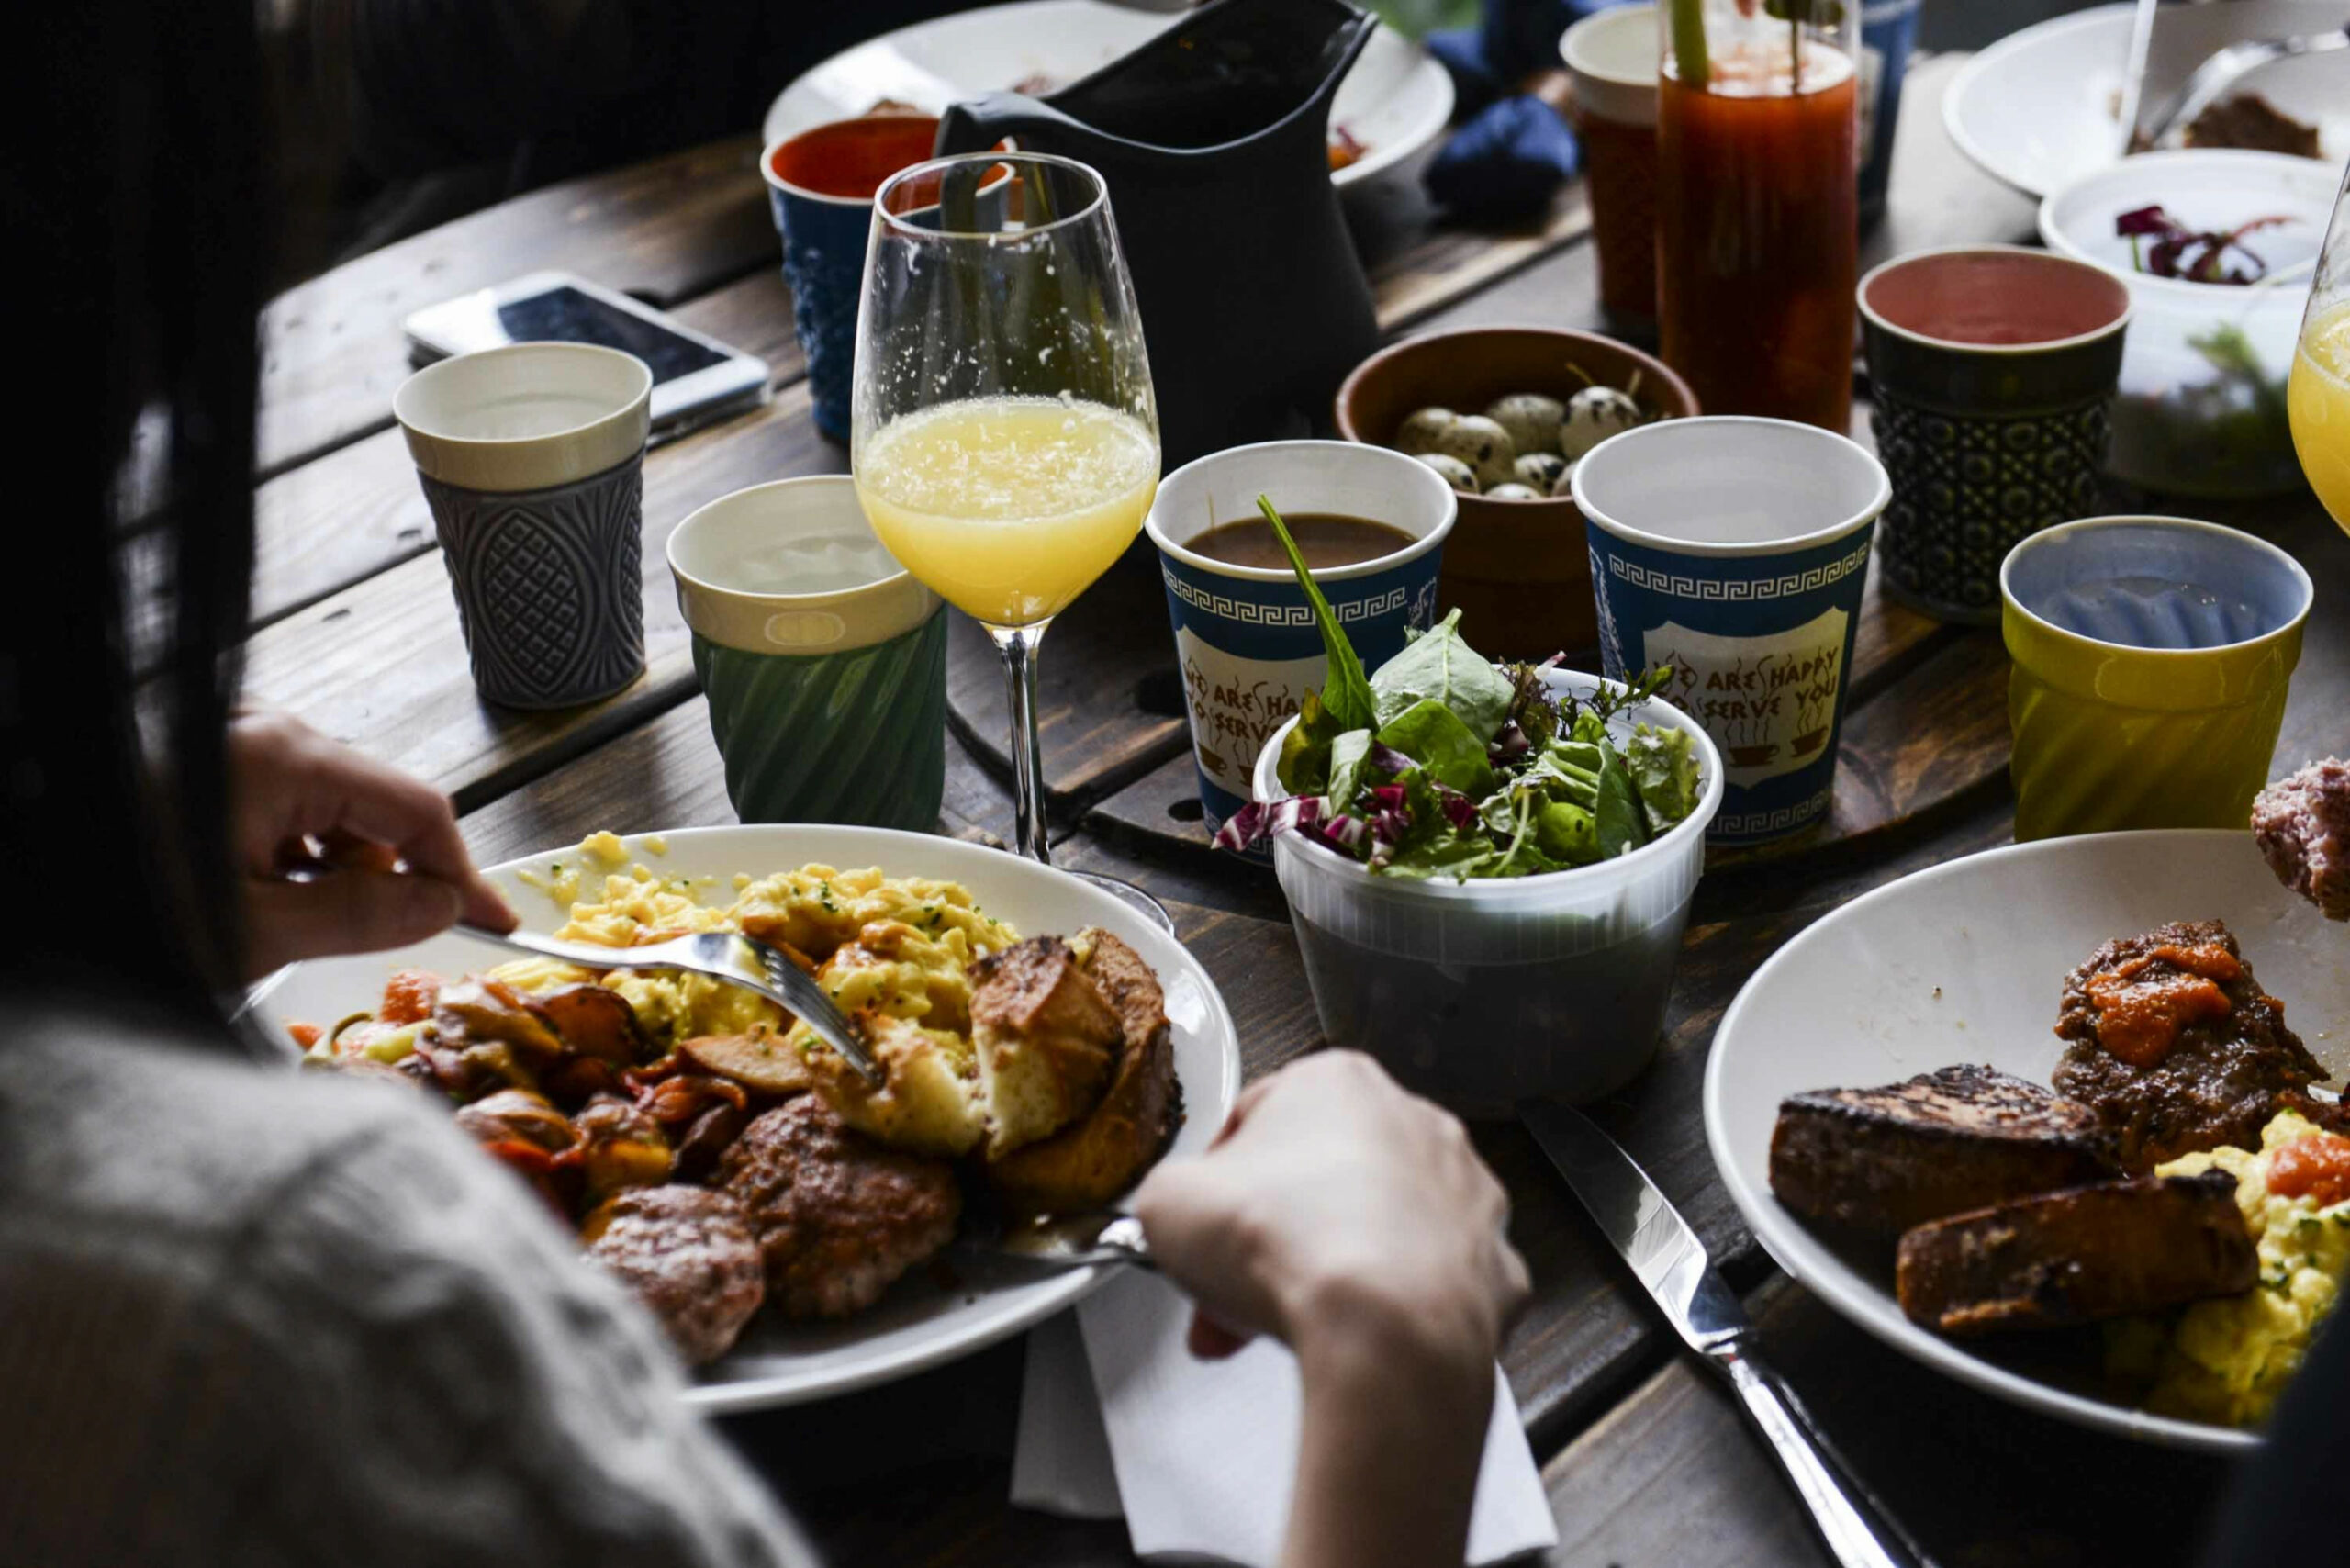 Bon Appétit' Brings Its Fundraising Dinner Series To Three ..